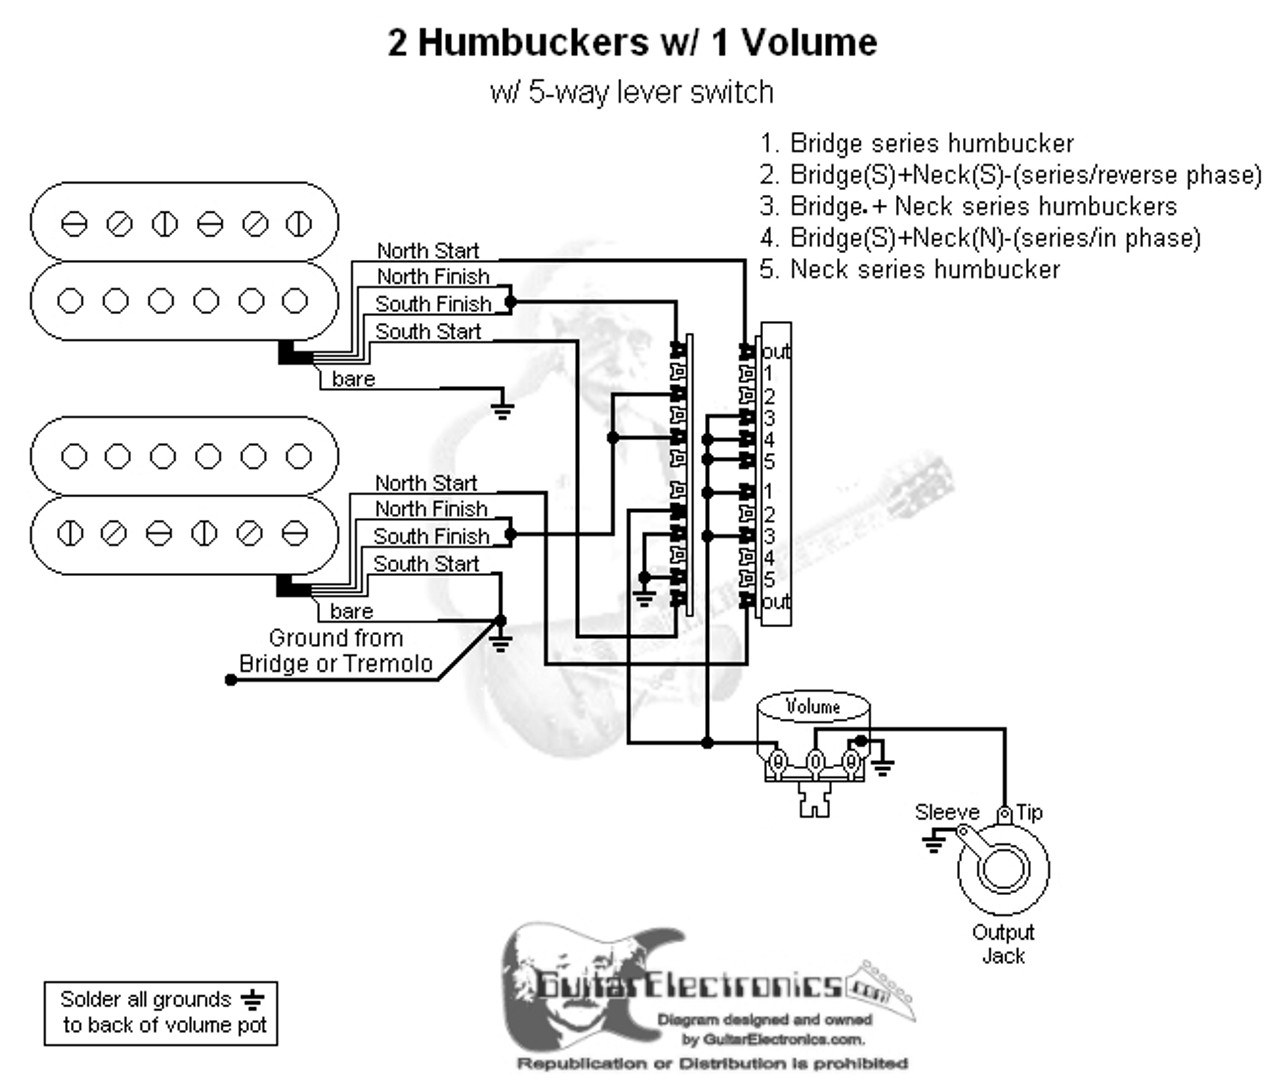 small resolution of 2 humbuckers 5 way lever switch 1 volume 03 wiring diagram 2 humbuckers 5way lever switch 1 volume 1 tone 03